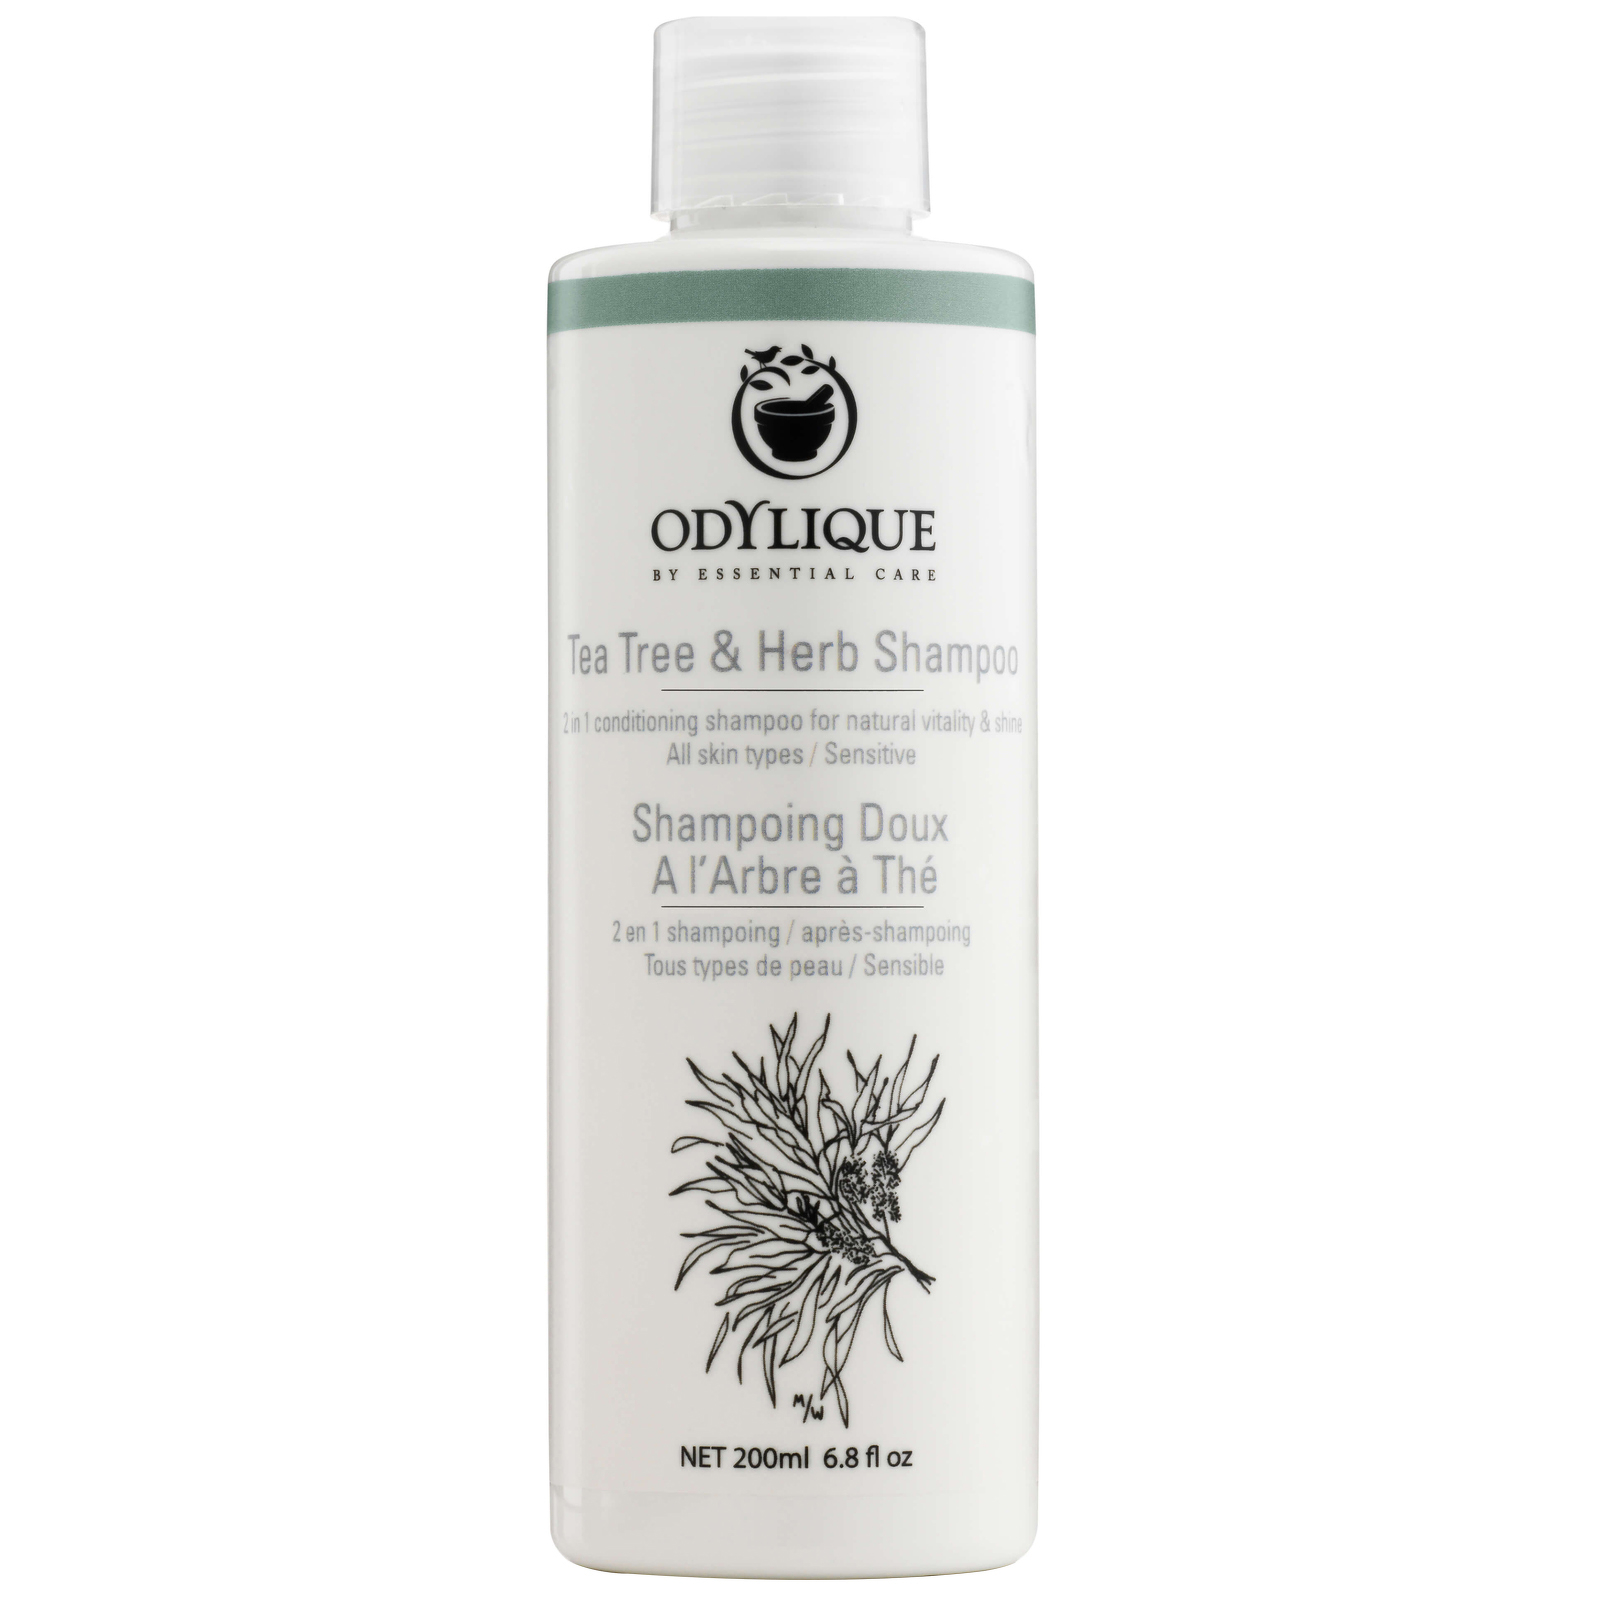 Odylique Hair Tea Tree & Herb Shampoo 200ml